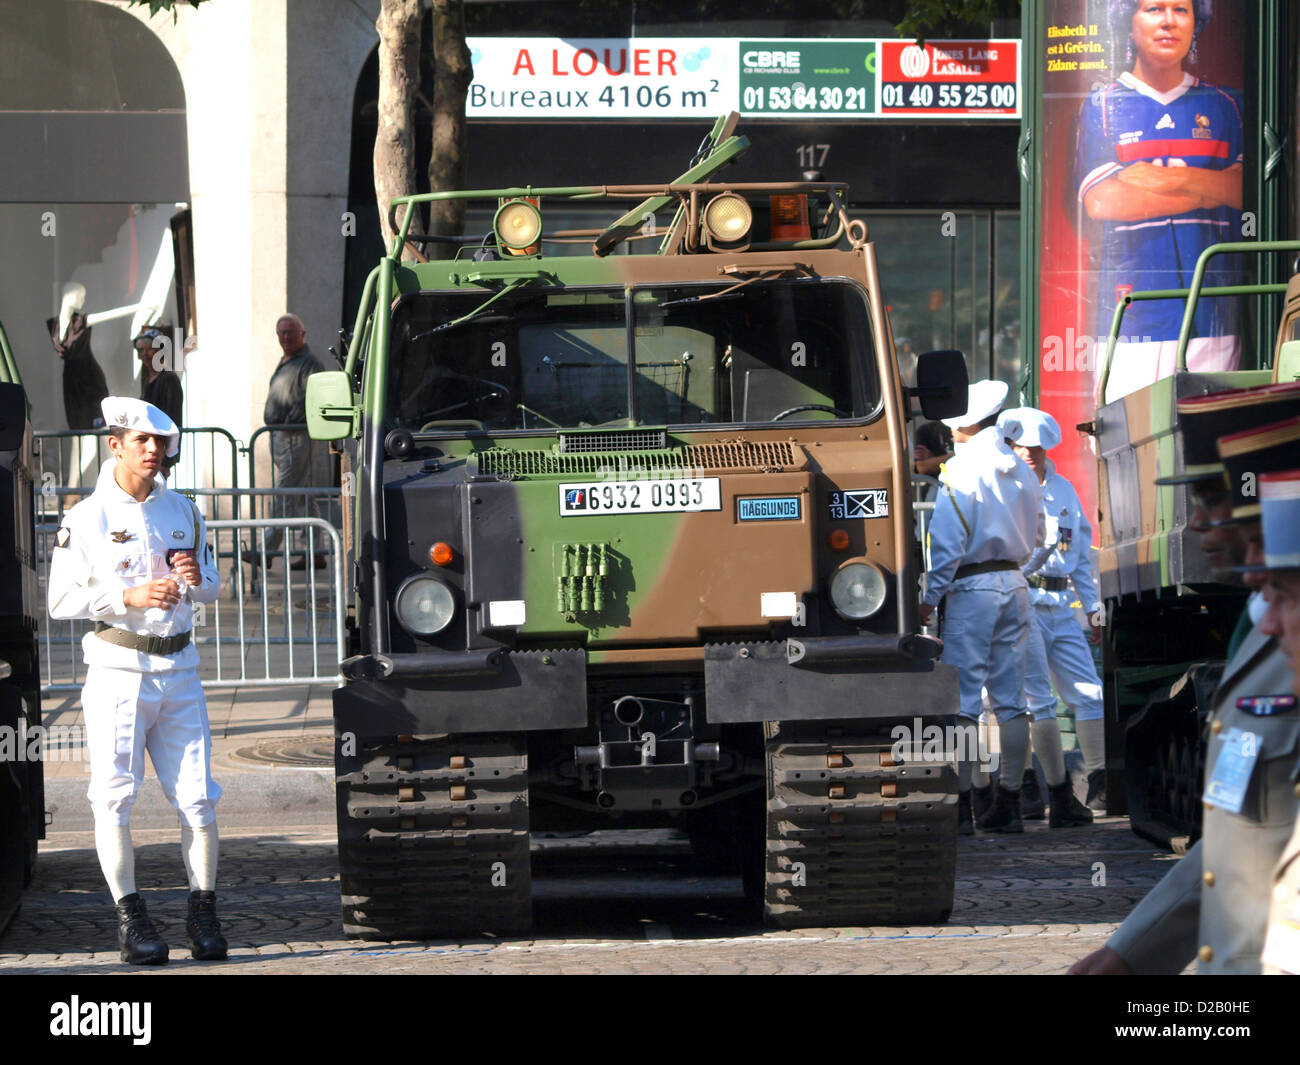 VHM-1 French military parade Champs Elysees - Stock Image